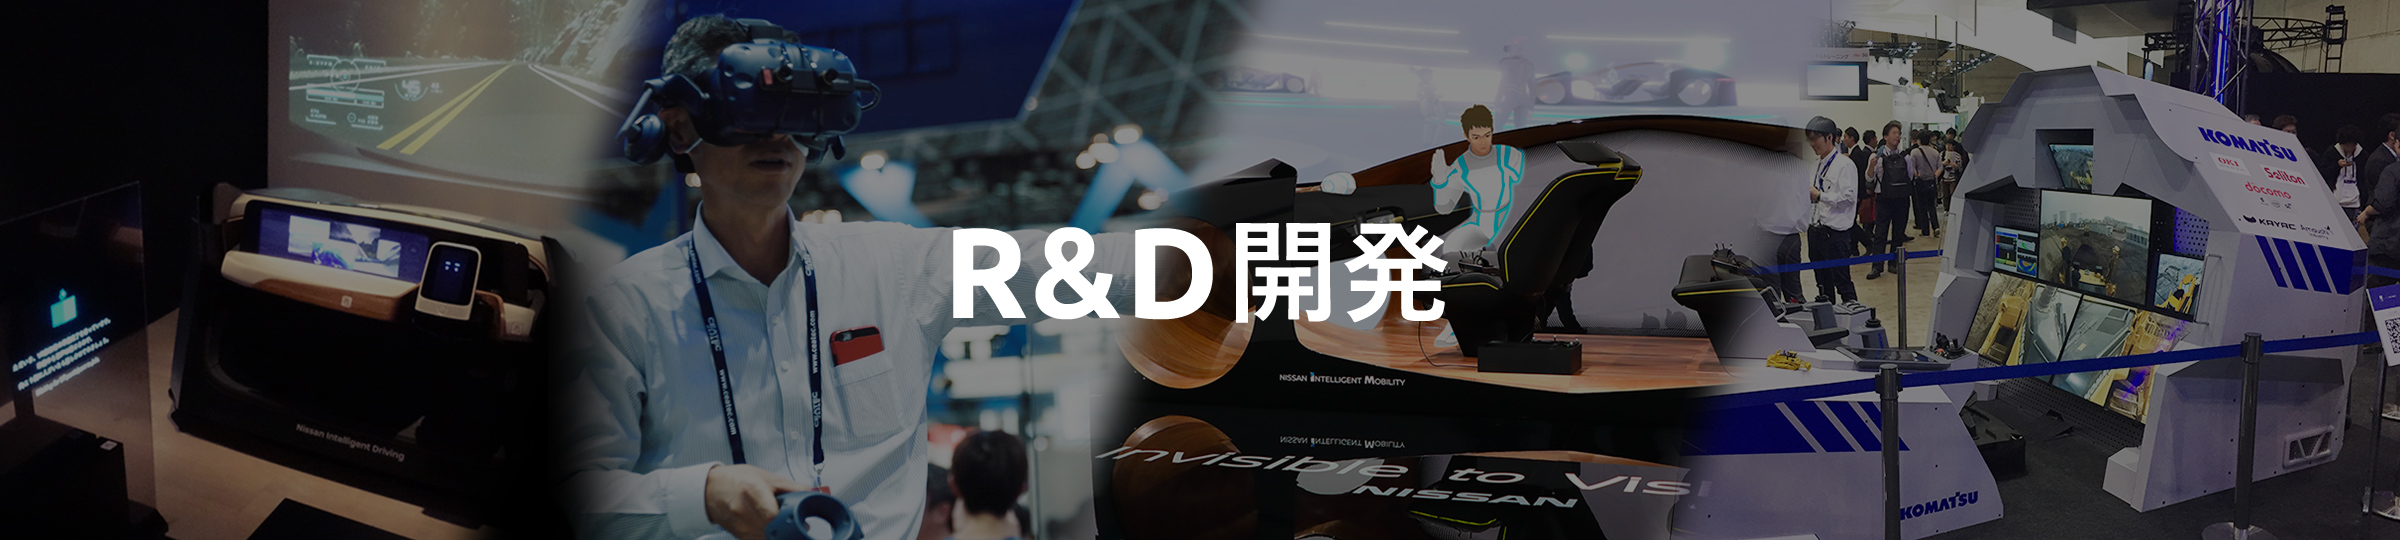 R&D開発(XR、VR)